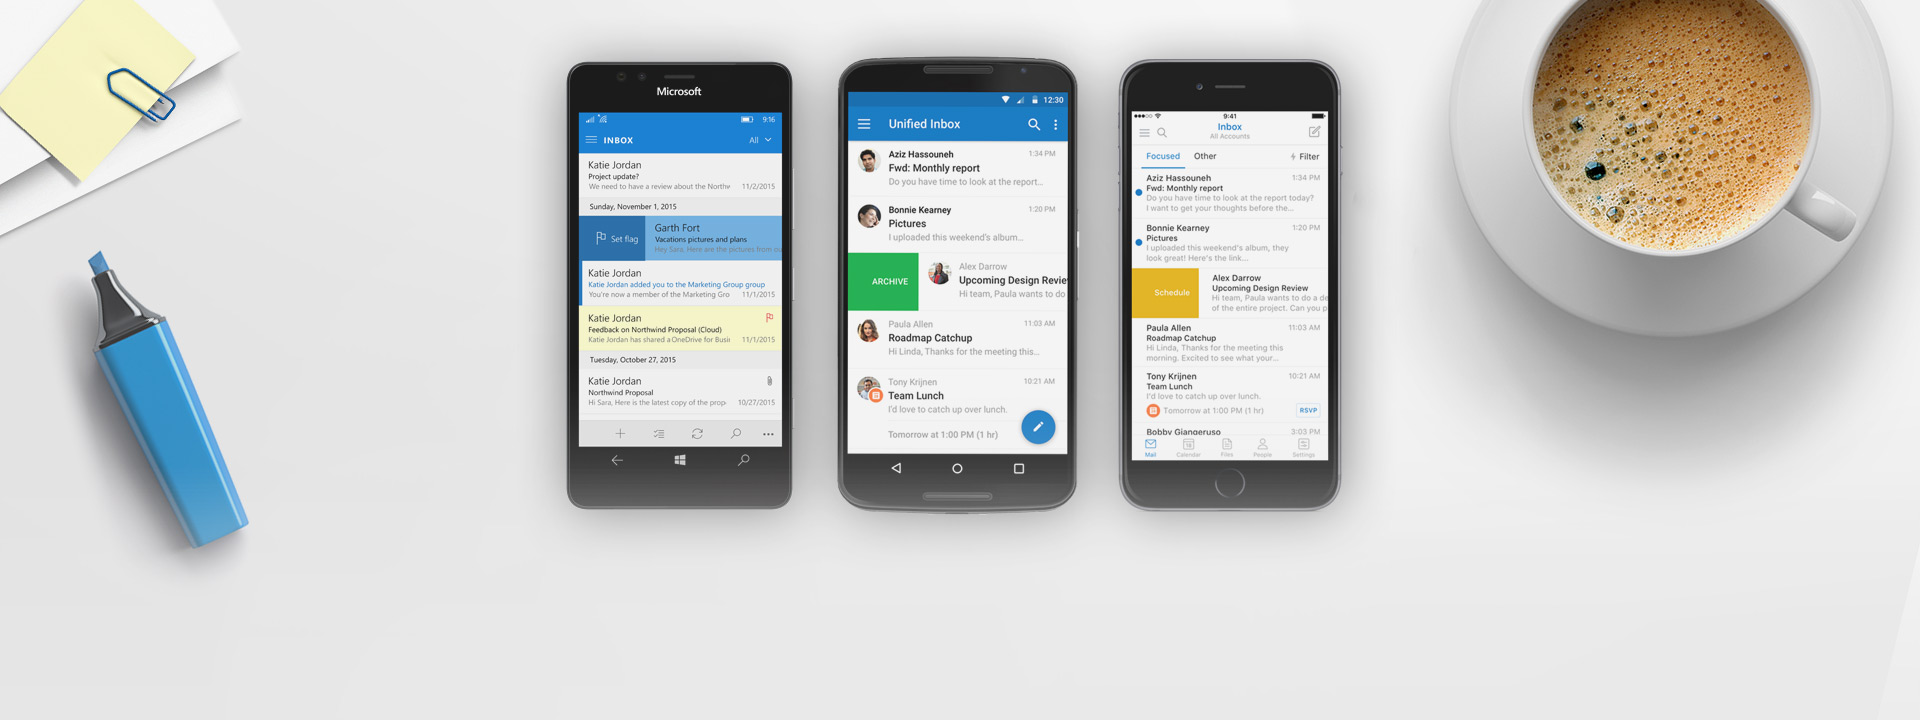 Windows Phone, iPhone und Android-Handy mit Outlook App auf dem Bildschirm